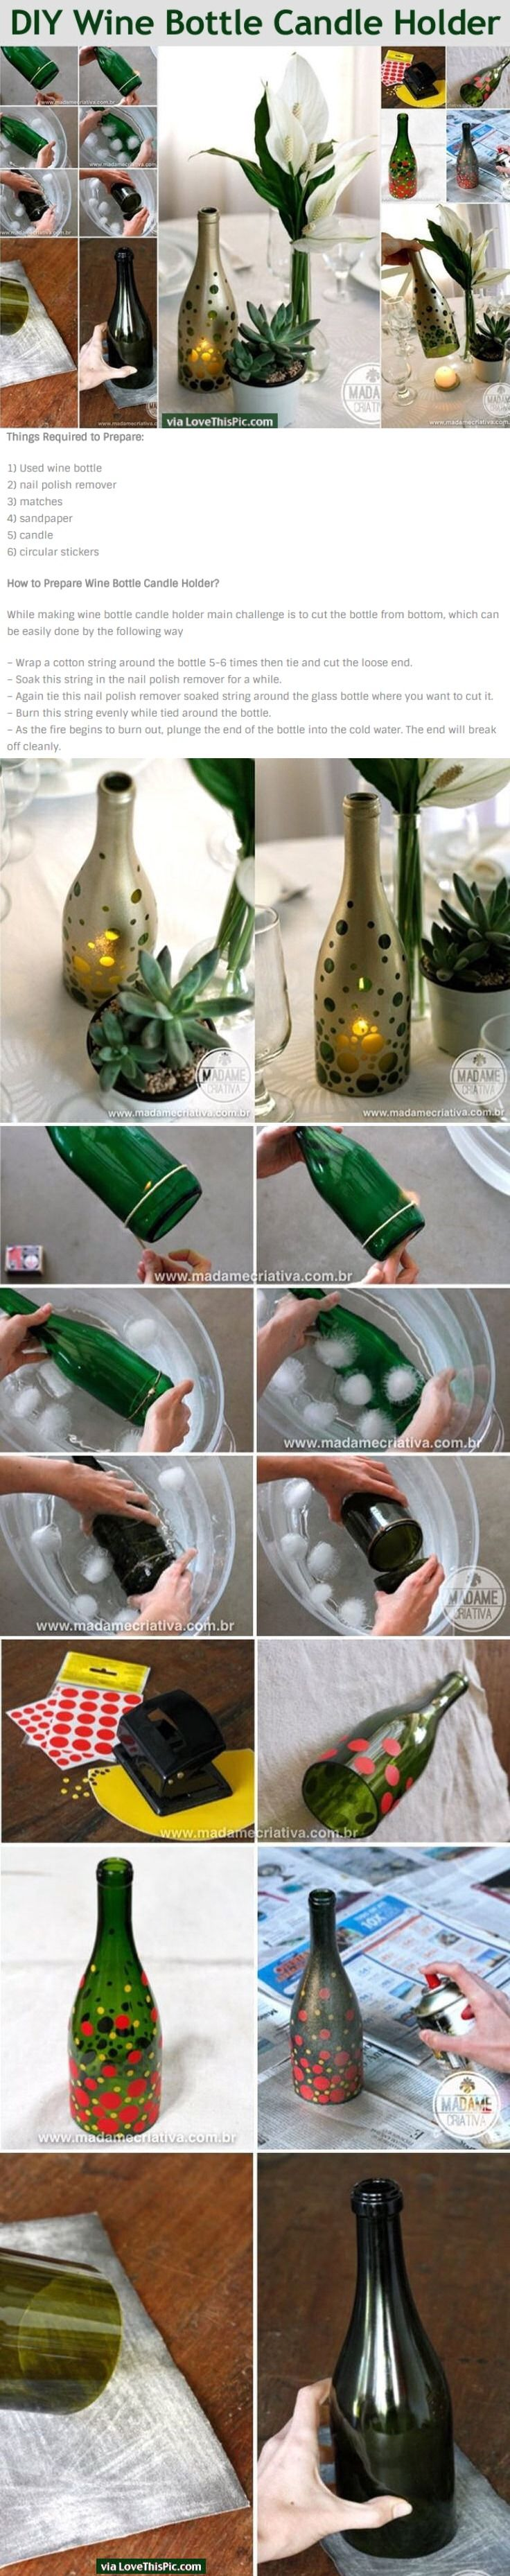 Diy Wine Bottle Candle Holder Pictures Photos And Images For Facebook Tumblr Pinterest And Twitter